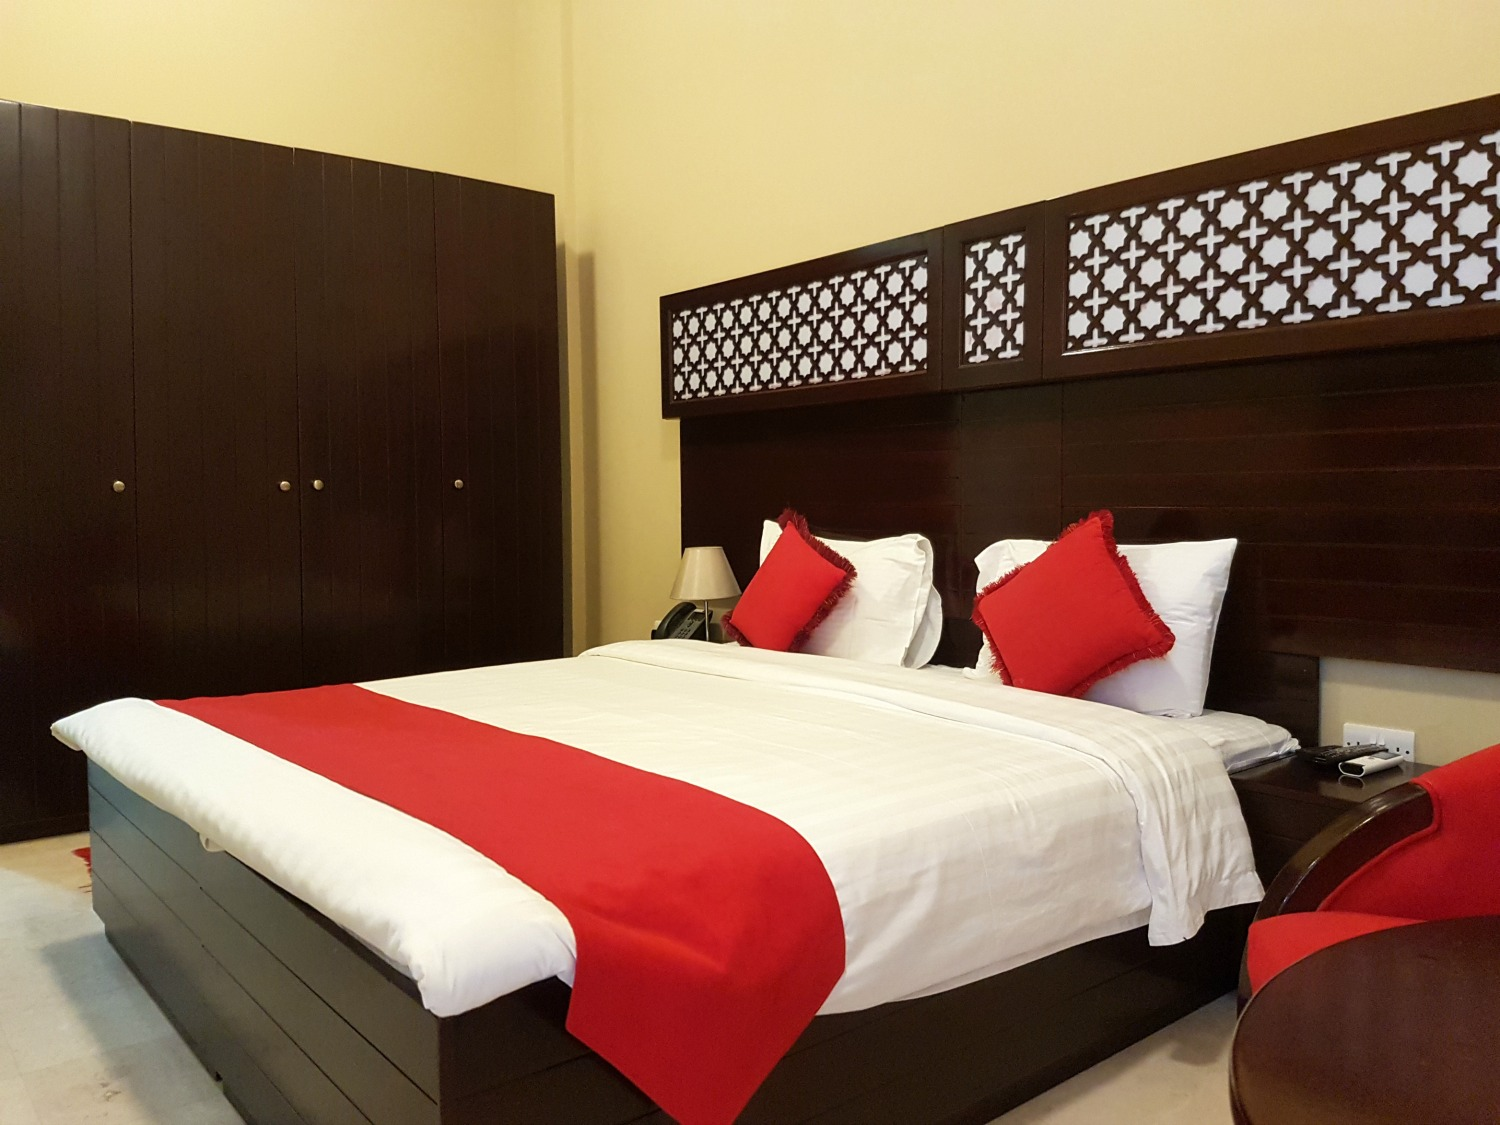 Our bedroom with its sleek dark wood bed and red and white bedcovers - our stay at Ras al Jinz turtle reserve in Oman